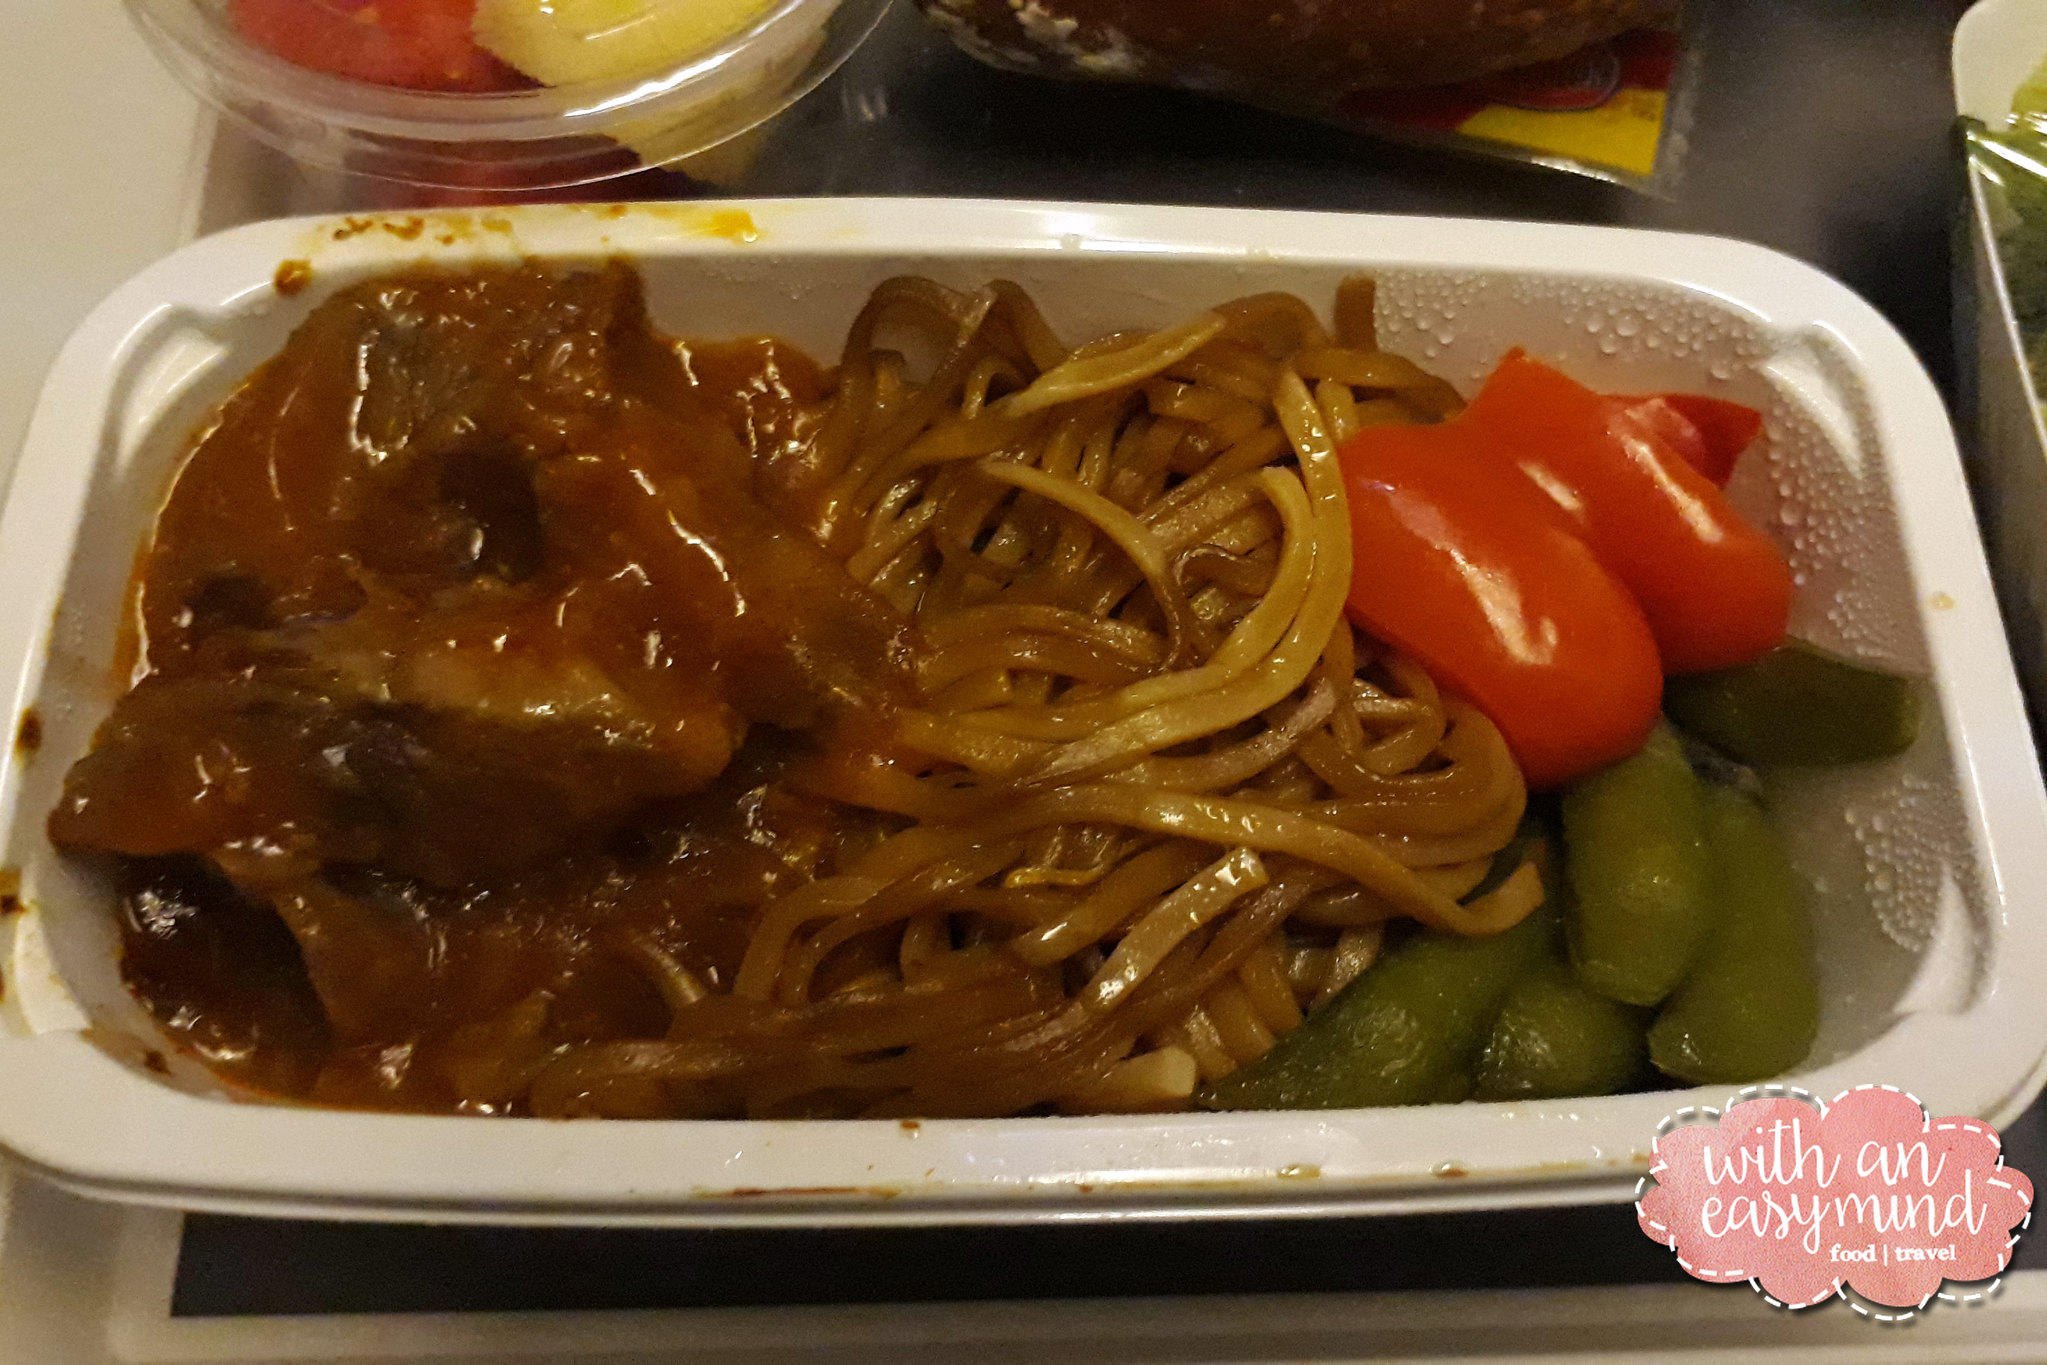 airfrance-meal-2